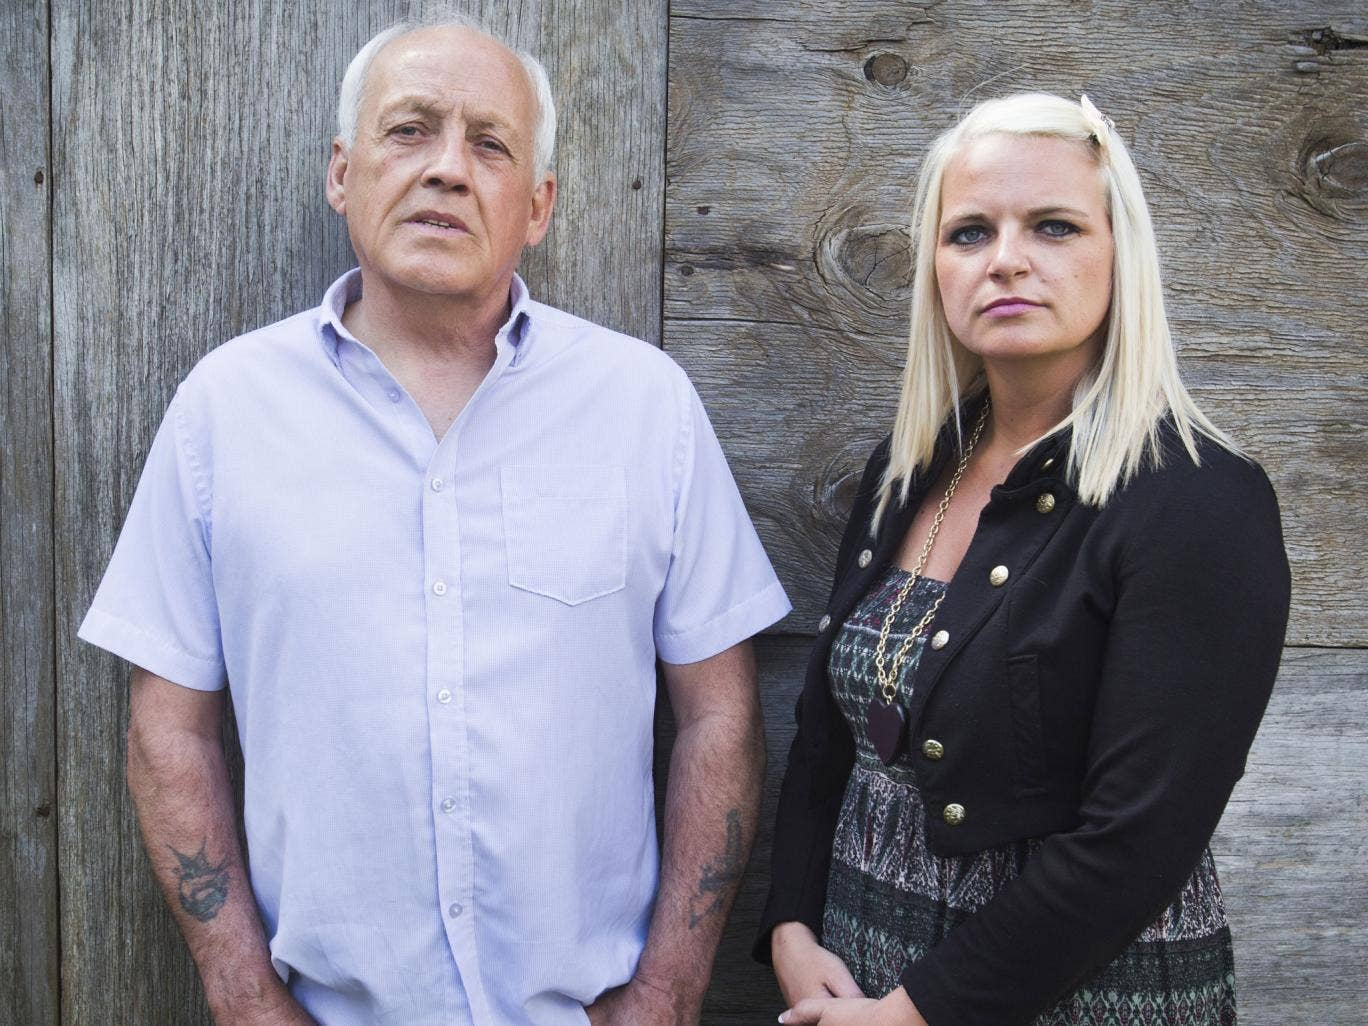 Larrie Lewington, is a former decorator who was exposed to asbestos in his twenties while working briefly as a lagger. Diagnosed with mesothelioma last August, he is eligible for compensation